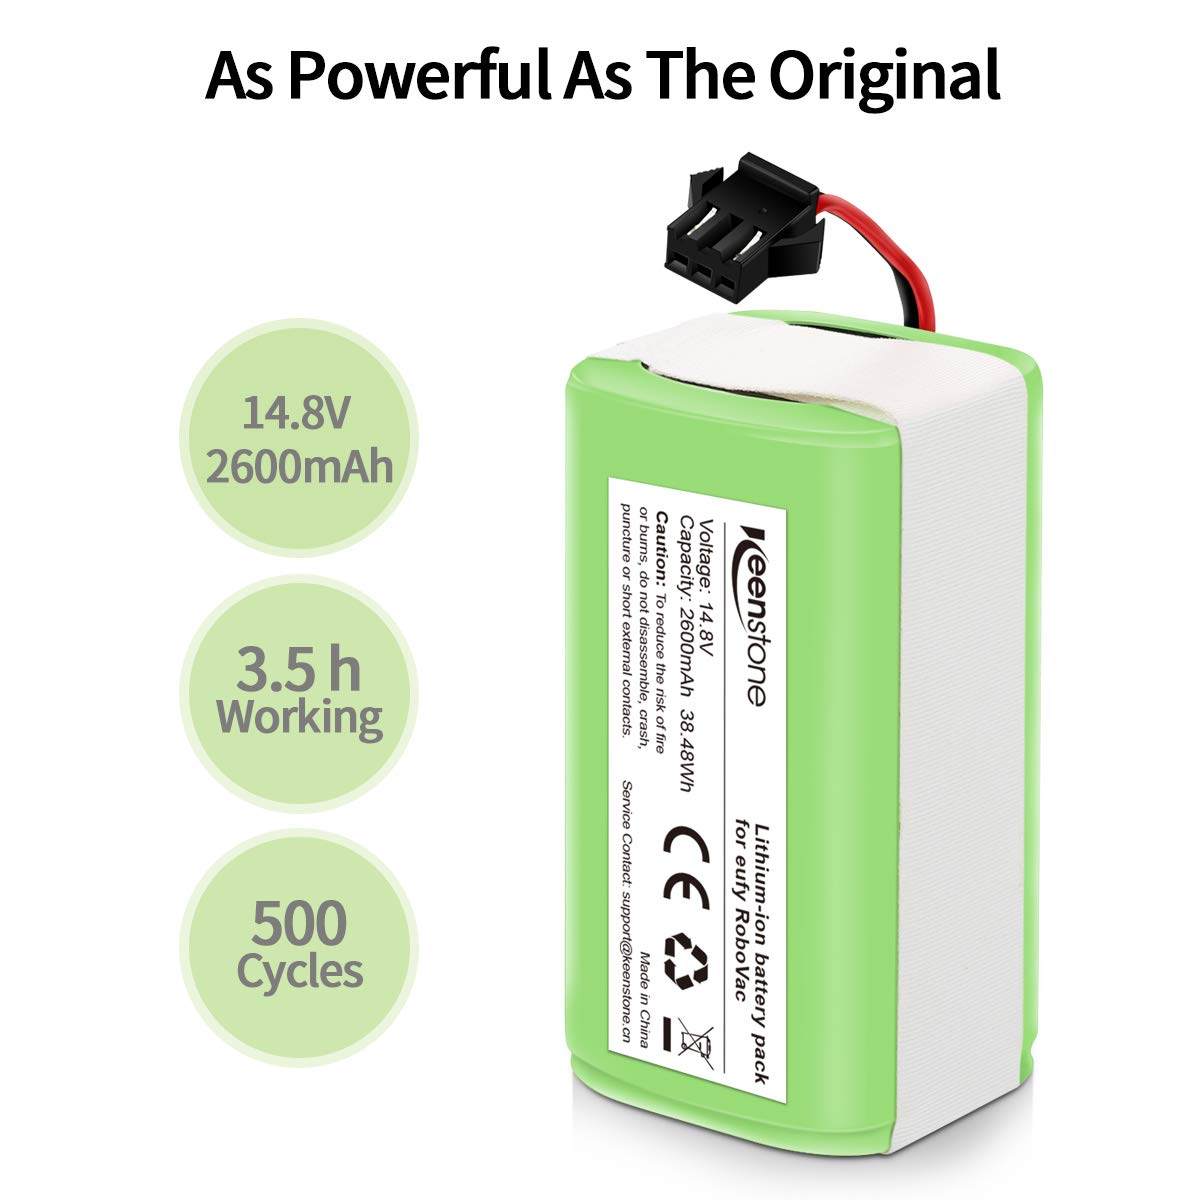 Keenstone 14.8v 2600mAh Li-ion Rechargeable Replacement Battery for Eufy Compatible with RoboVac 11, RoboVac 11S, RoboVac 11S MAX, RoboVac 15T, RoboVac 30, RoboVac 15C, RoboVac 12, RoboVac 35C